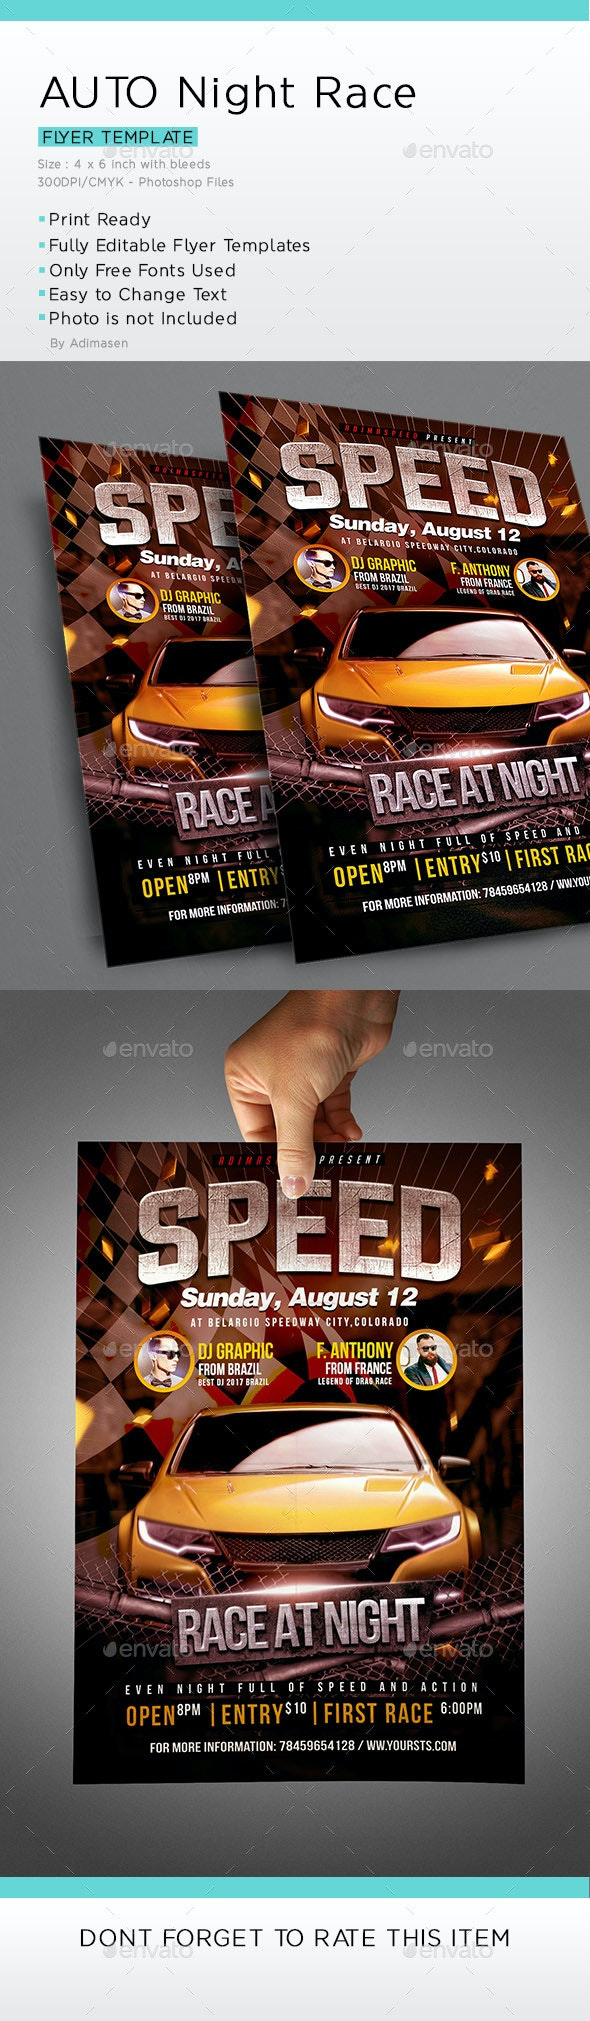 Auto racing Flyer Template by adimasen | GraphicRiver